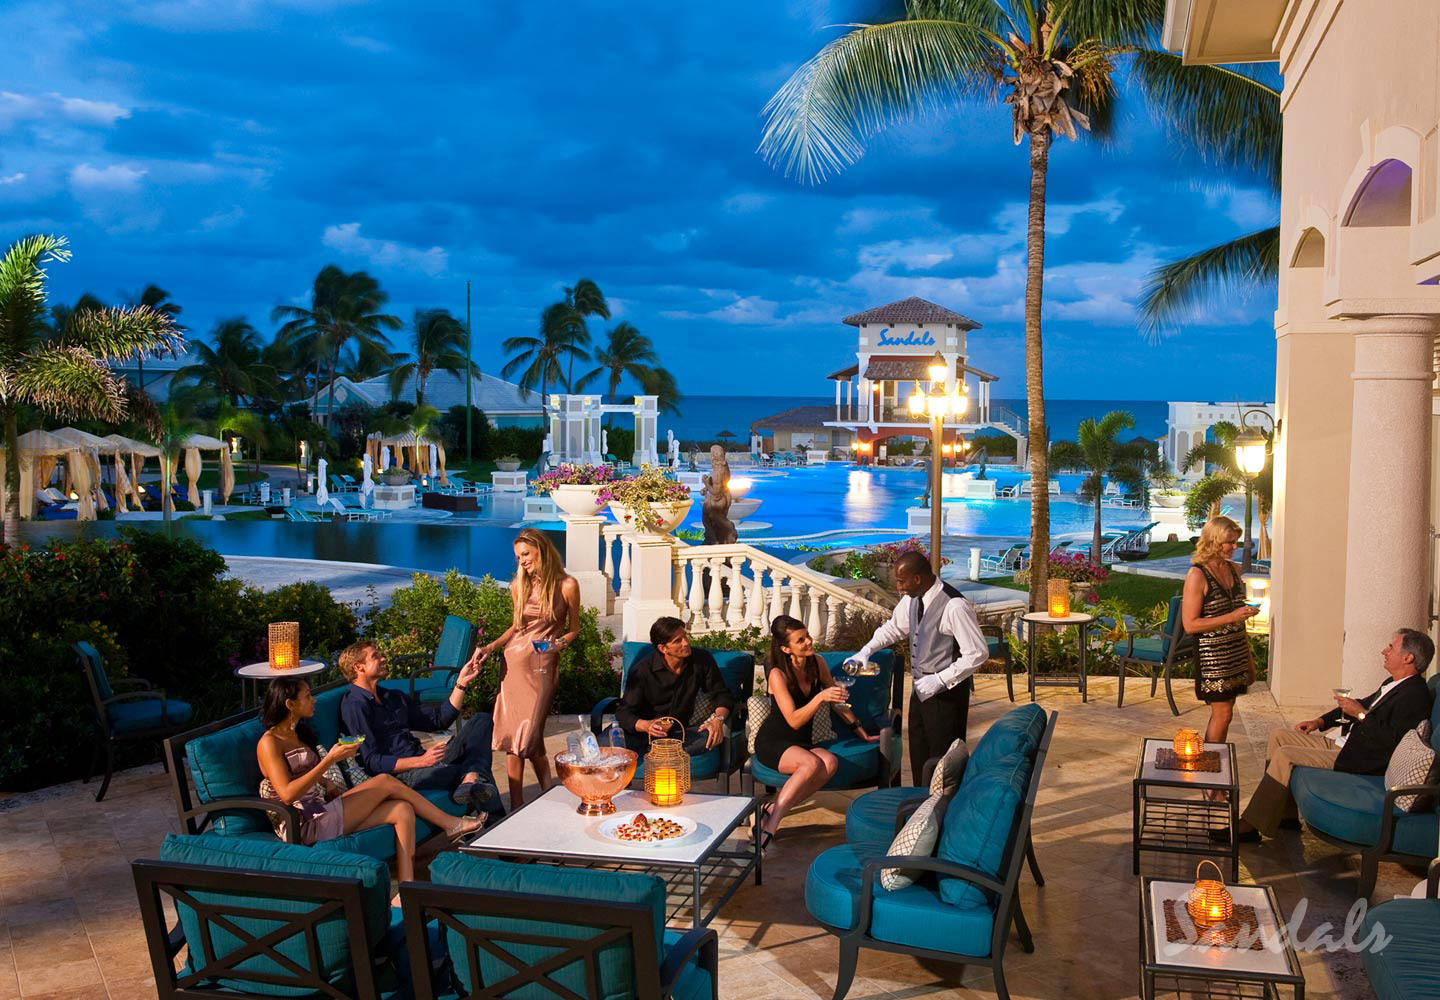 Travel Agency All-Inclusive Resort Sandals Emerald Bay 047